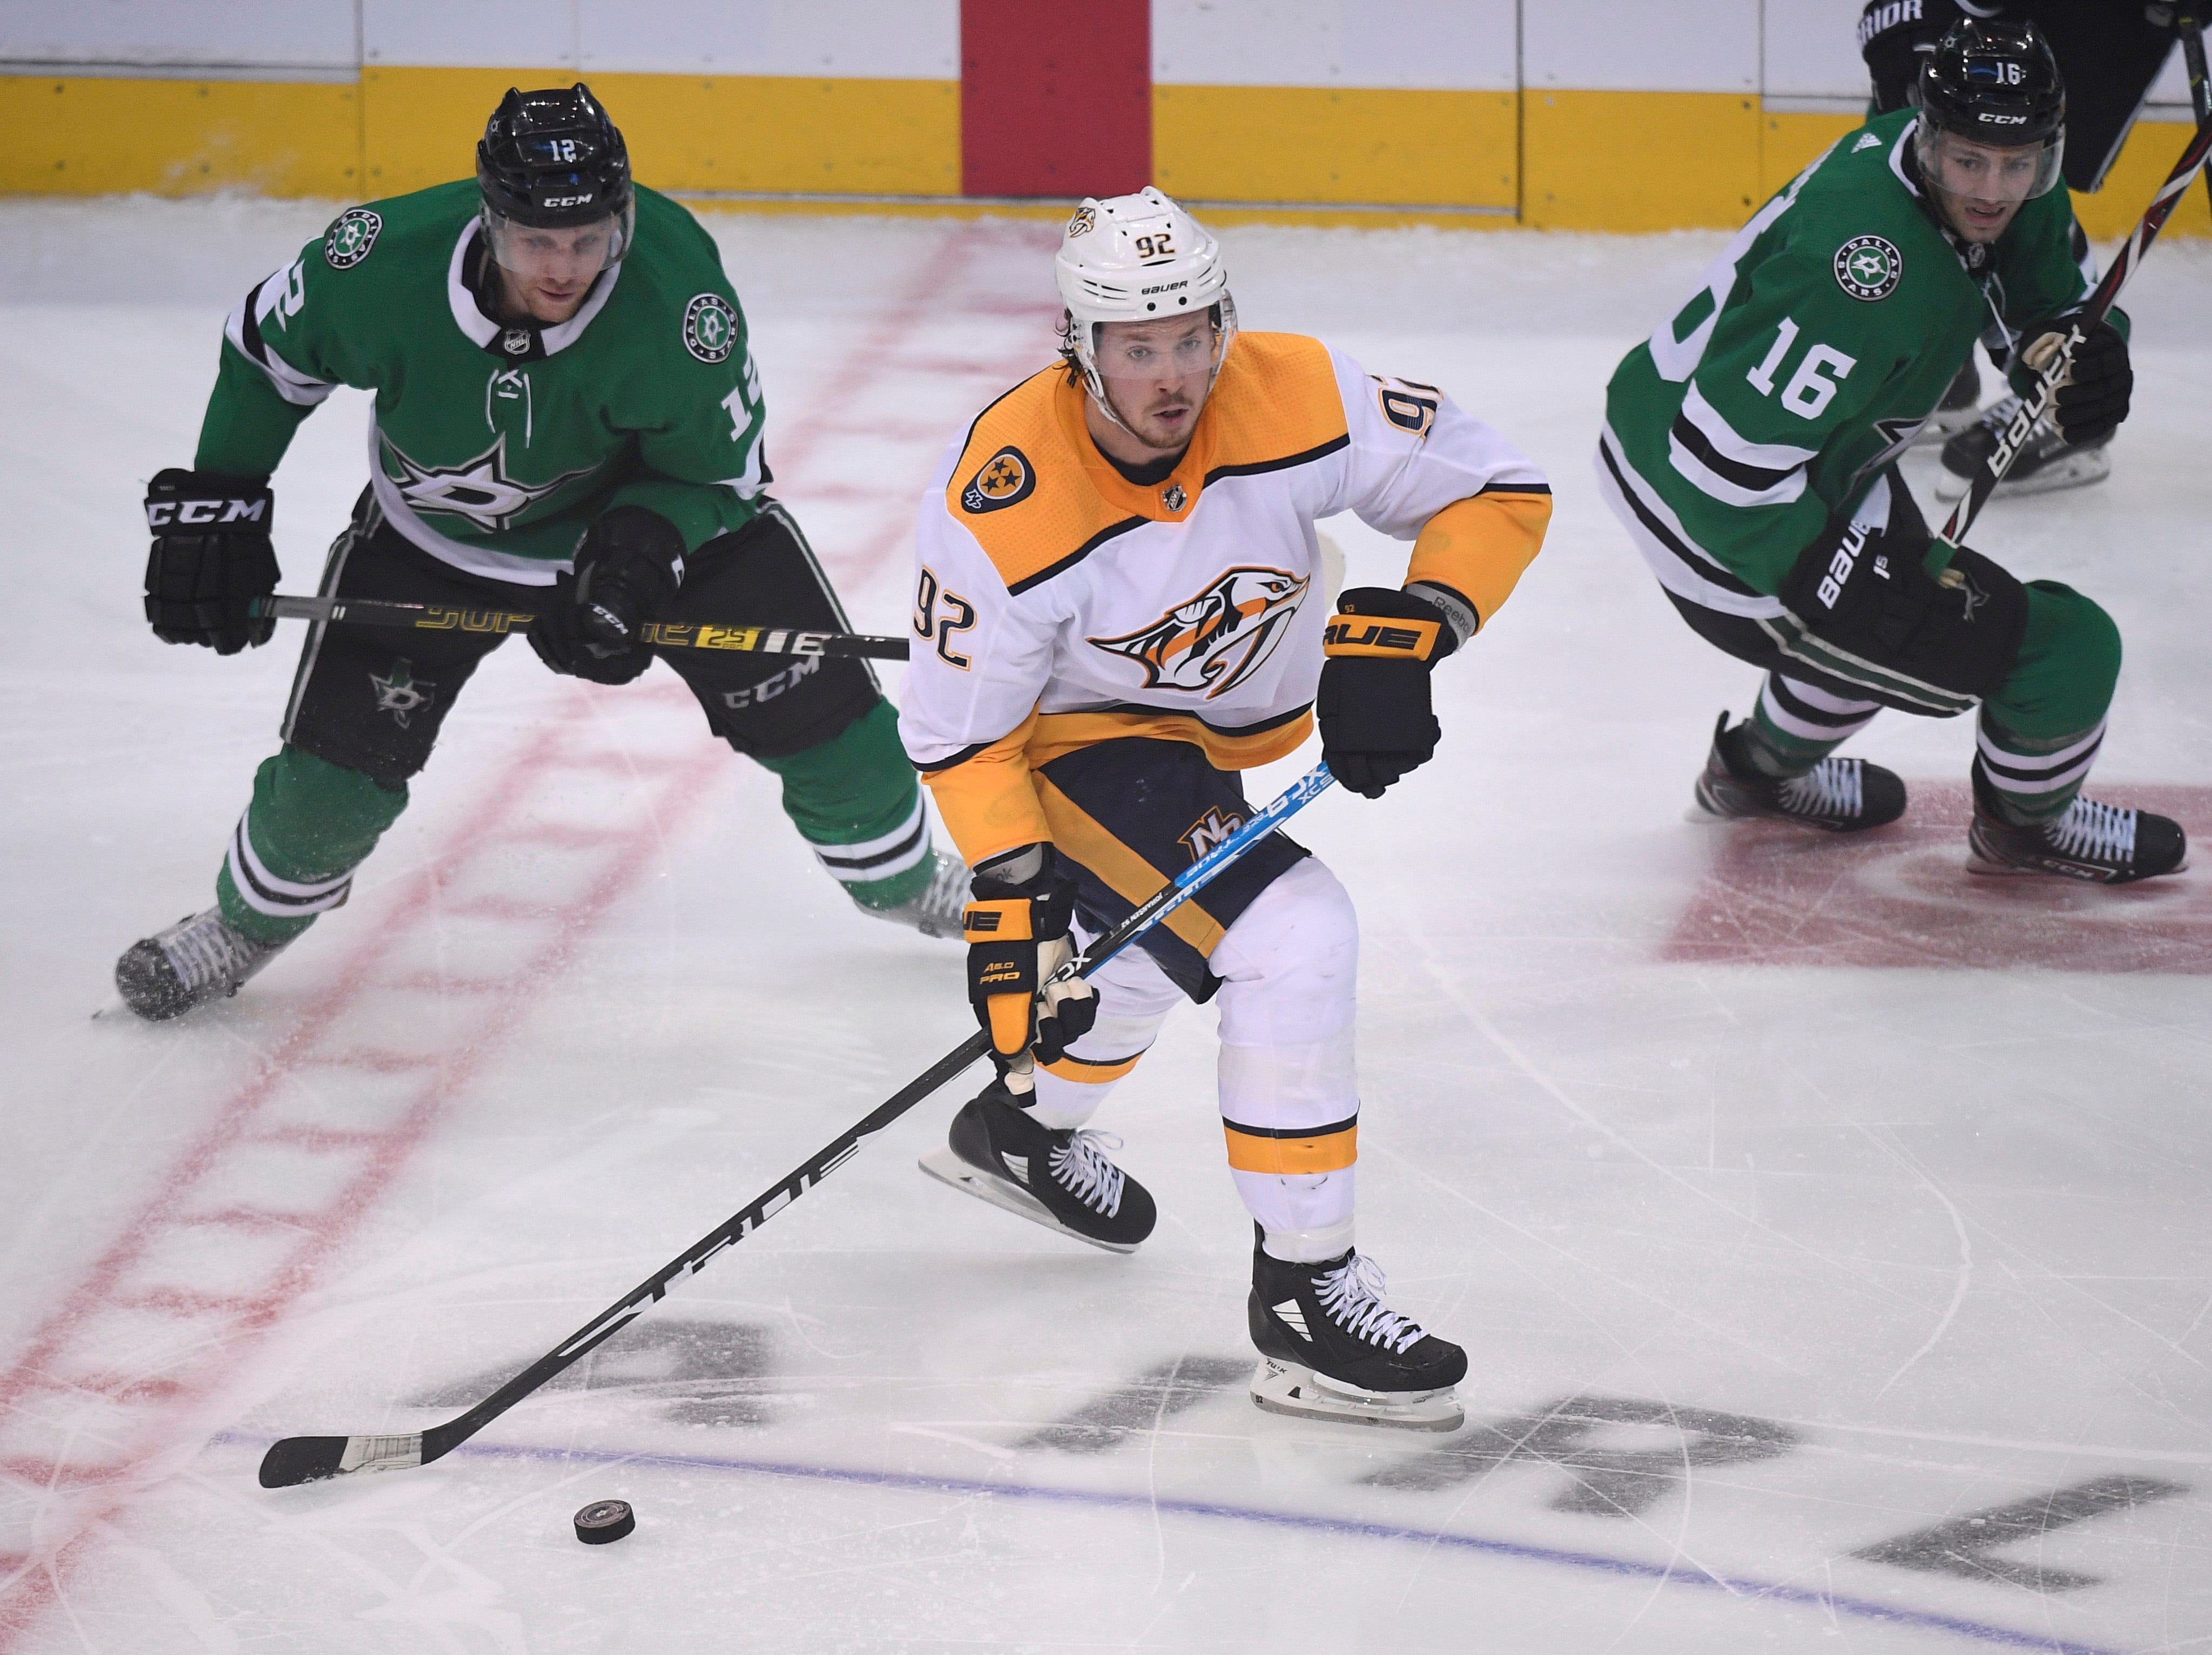 Nashville Predators center Ryan Johansen (92) moves the puck trailed by Dallas Stars centers Radek Faksa (12) and Jason Dickinson (16) during the third period of the divisional semifinal game at the American Airlines Center in Dallas, Texas., Monday, April 15, 2019.